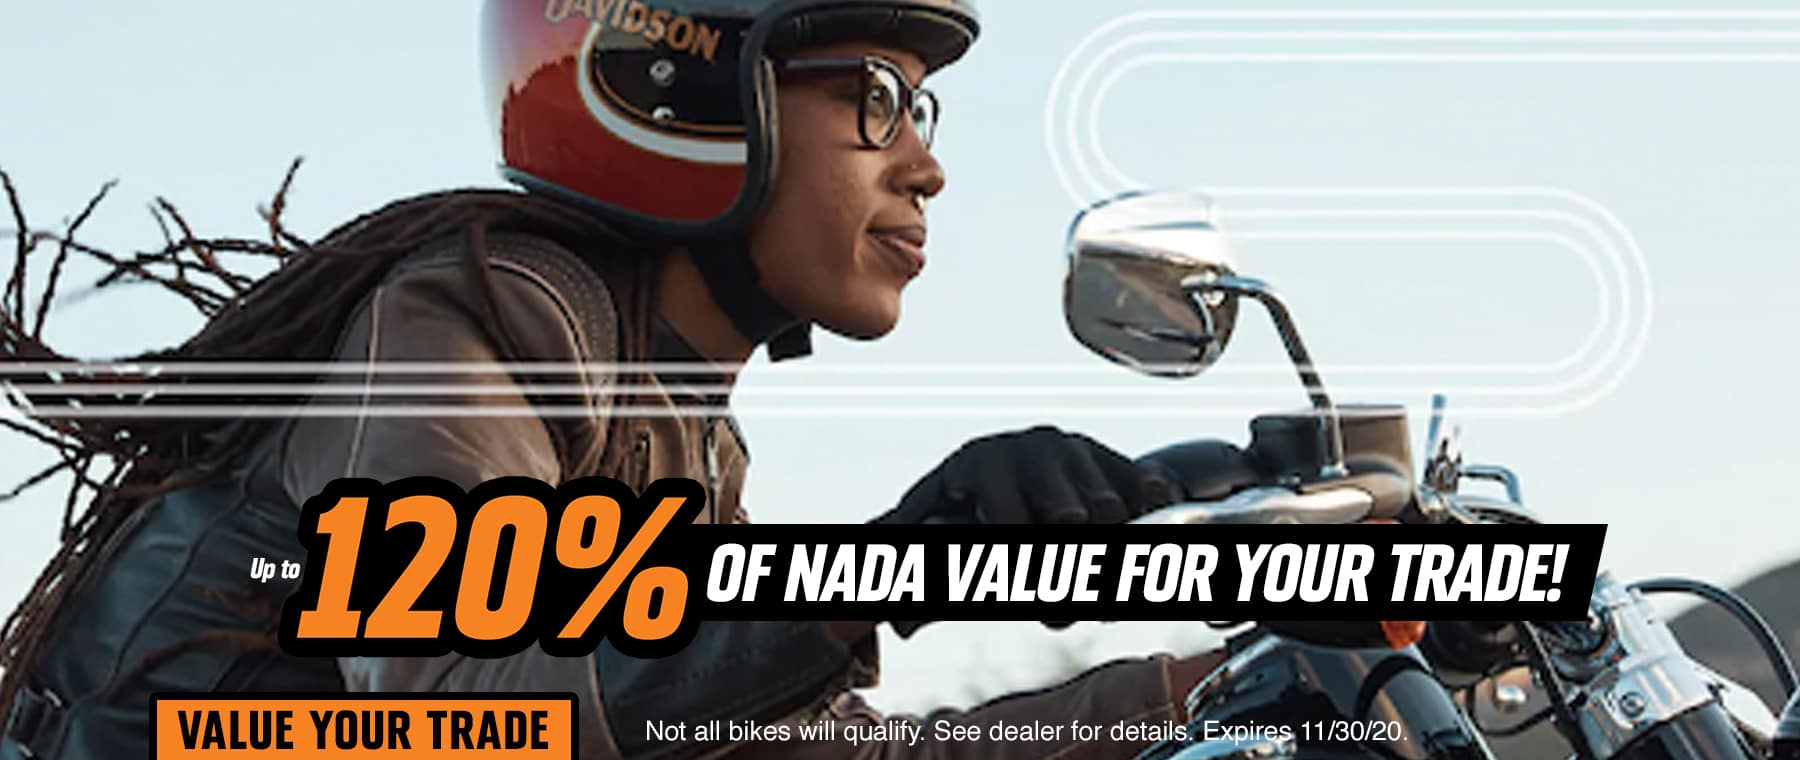 Up to 120% of NADA Value for your trade!